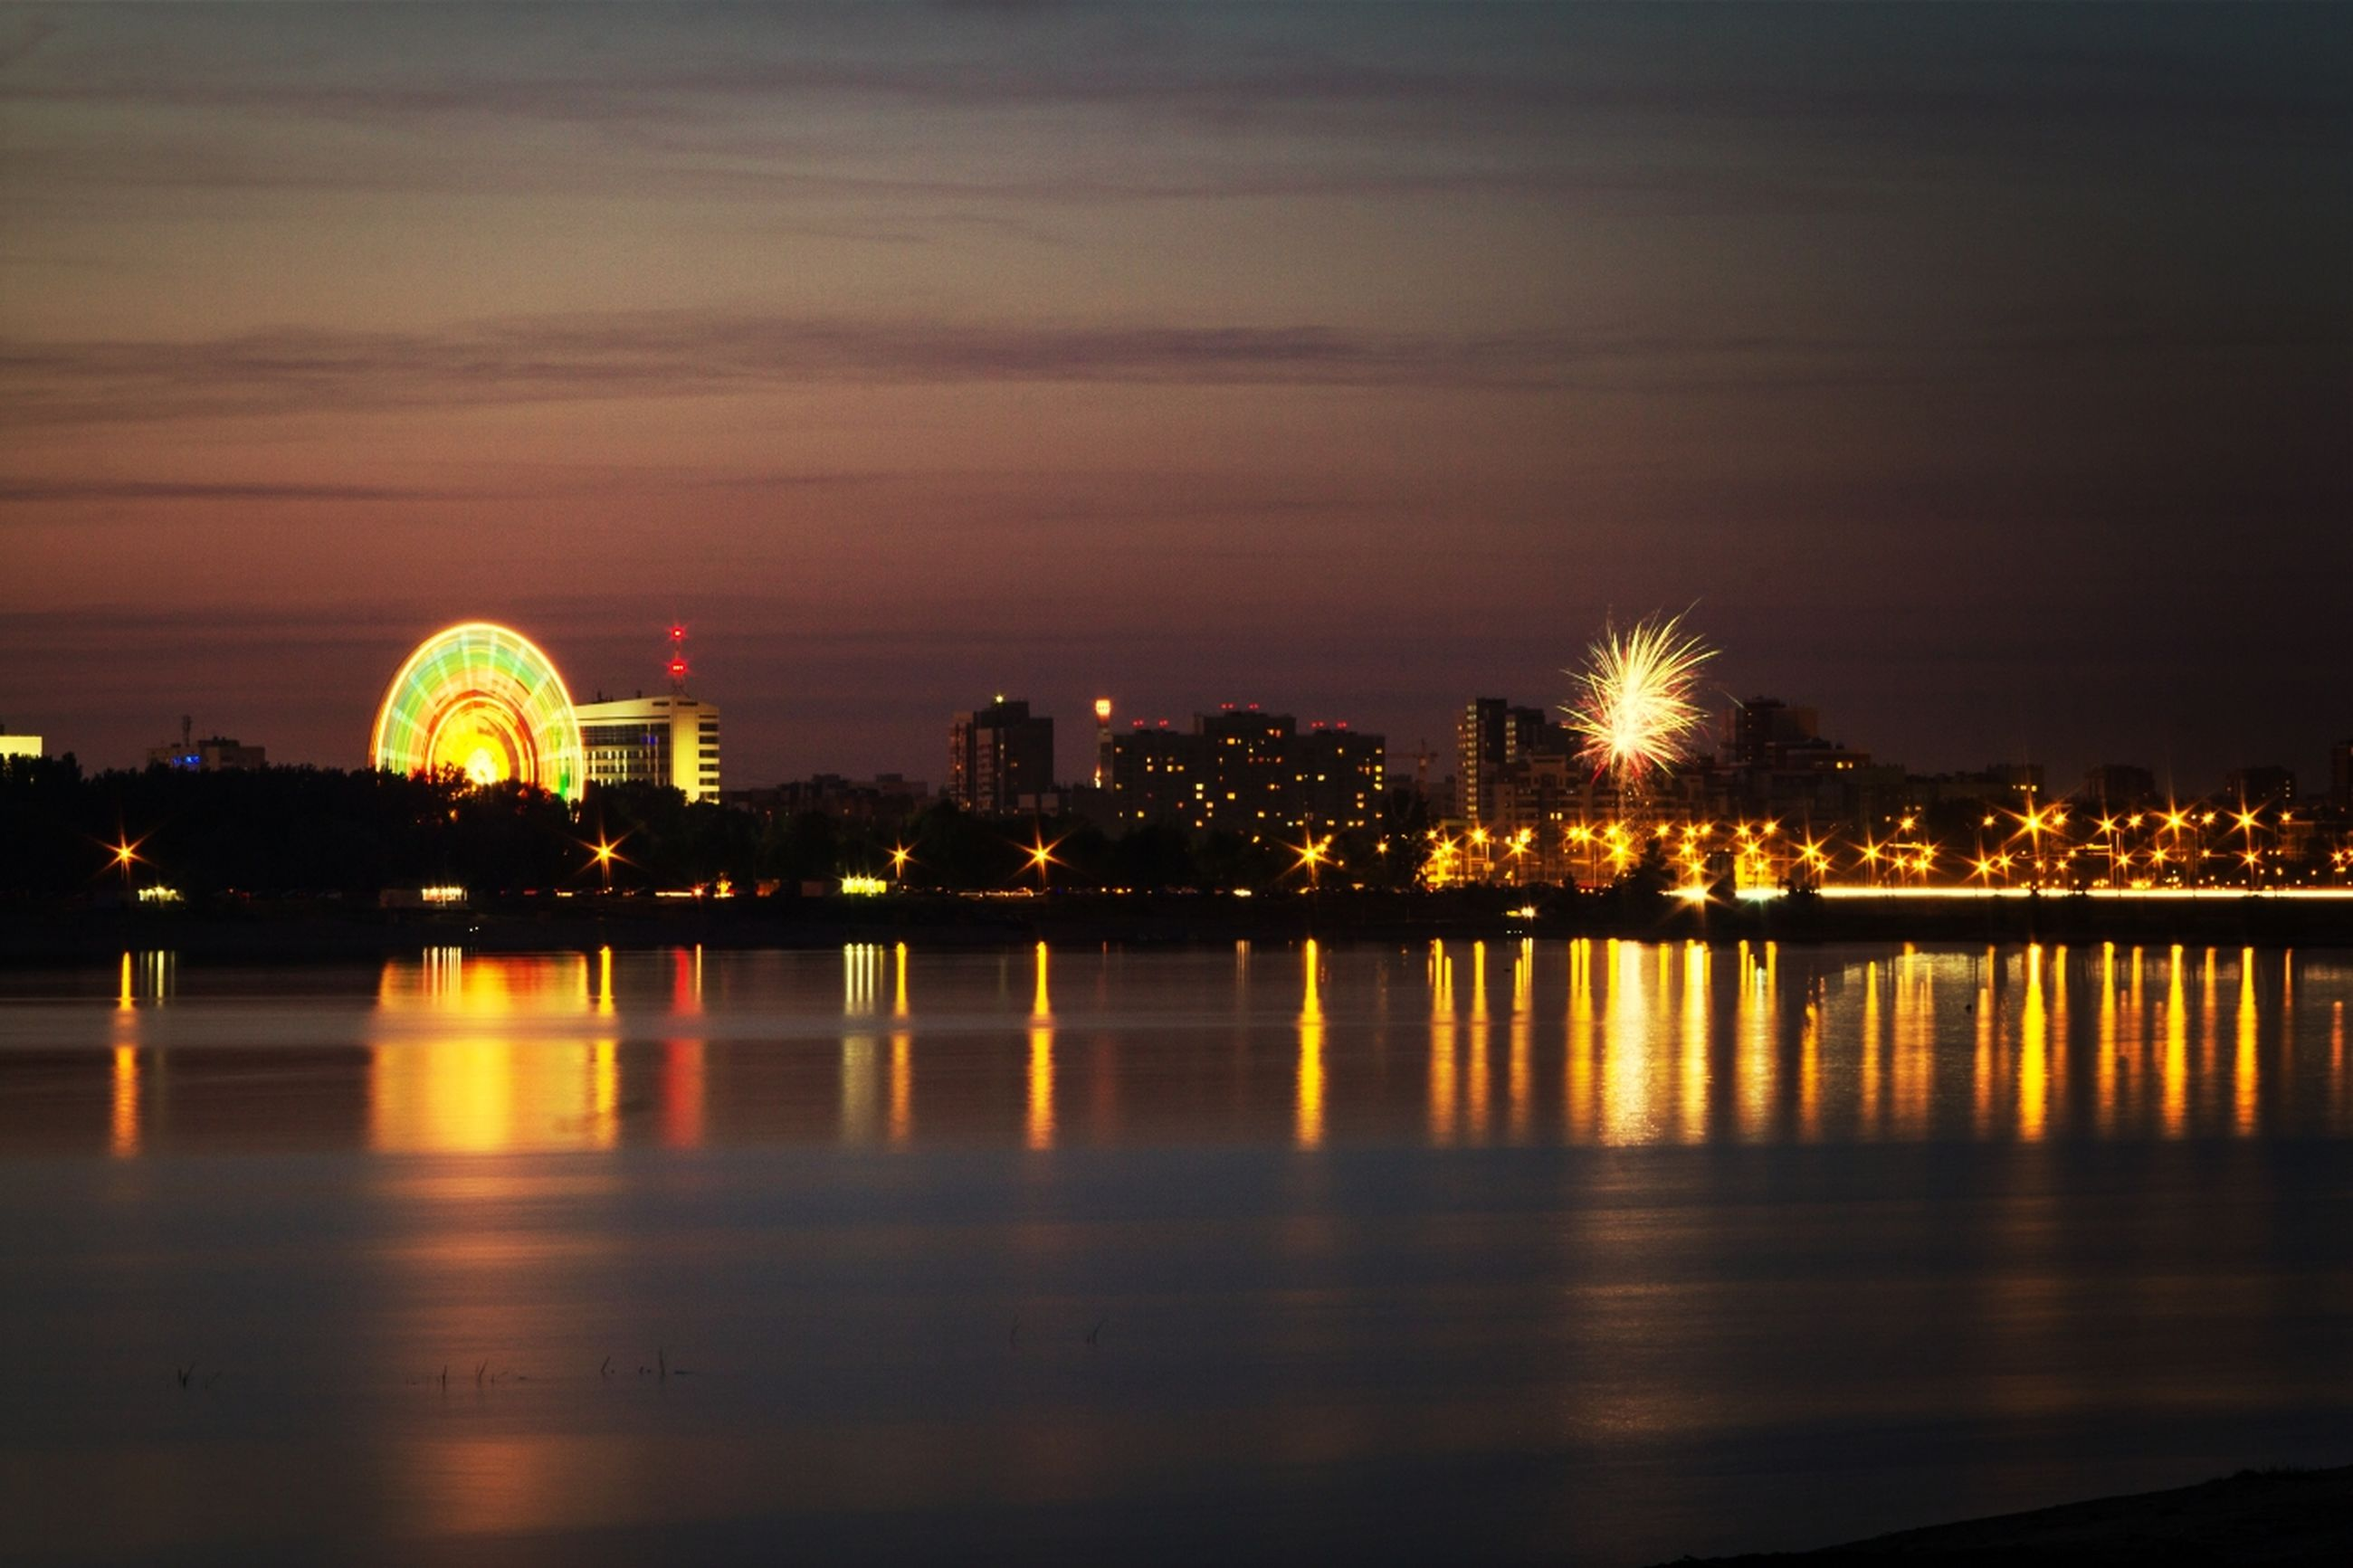 illuminated, reflection, water, night, waterfront, built structure, architecture, sky, city, building exterior, river, sunset, cityscape, long exposure, glowing, travel destinations, orange color, outdoors, city life, light